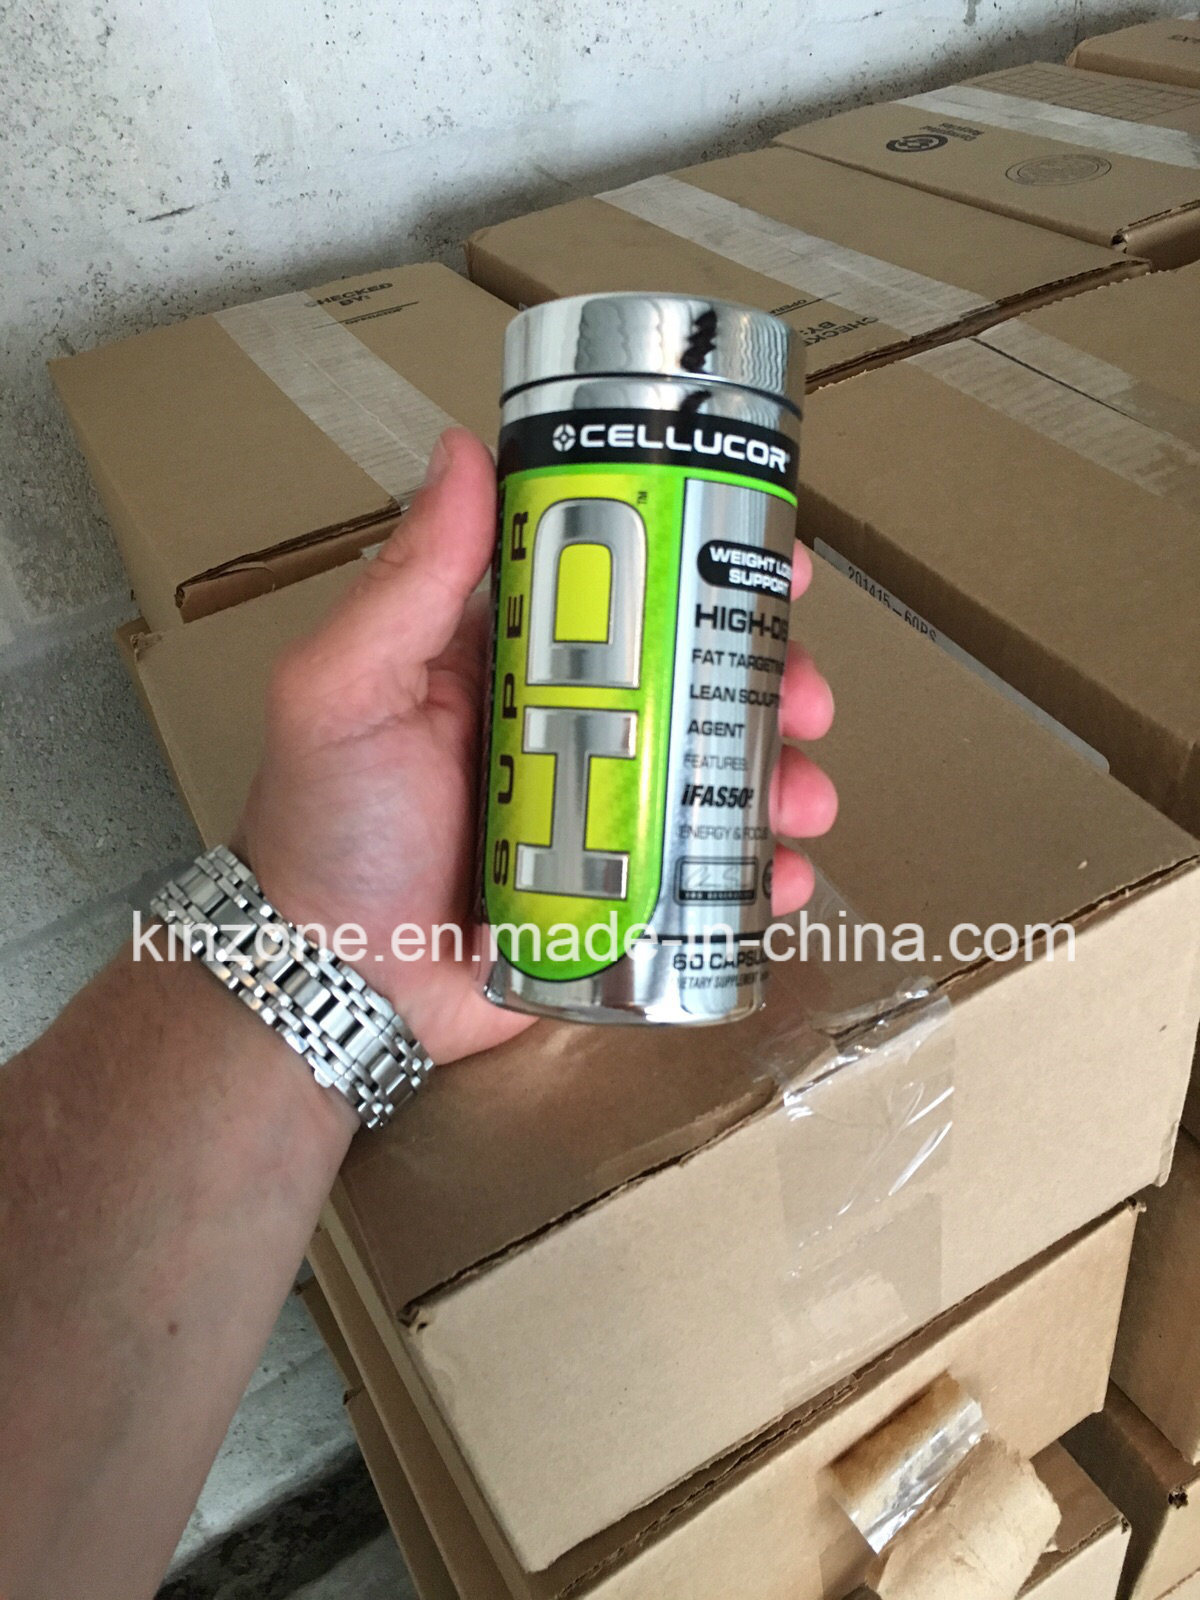 Mhp Xpel Bodybuilding HD, Recycle, Lipodrene, P6, Synedrex, Jack 3D, Lipo 6 for Muscle Growth